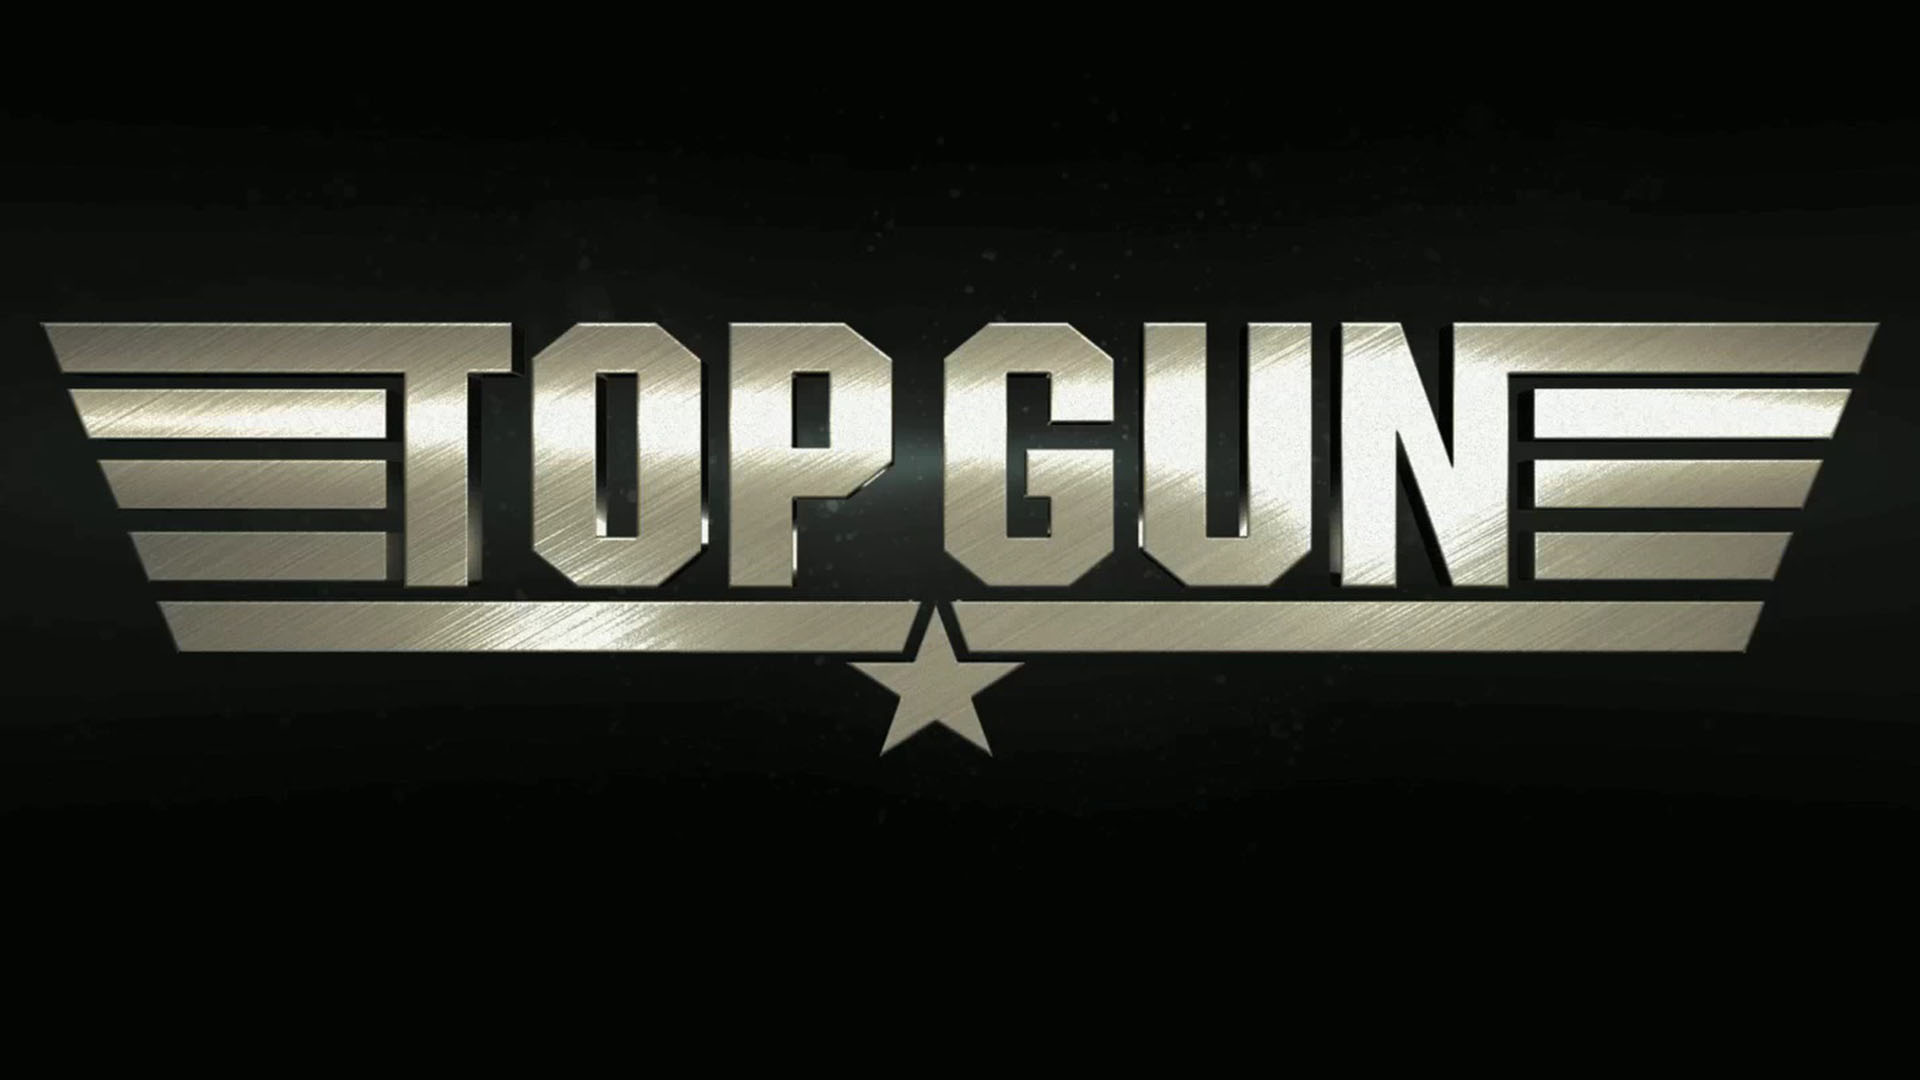 Top Gun Wallpaper 2